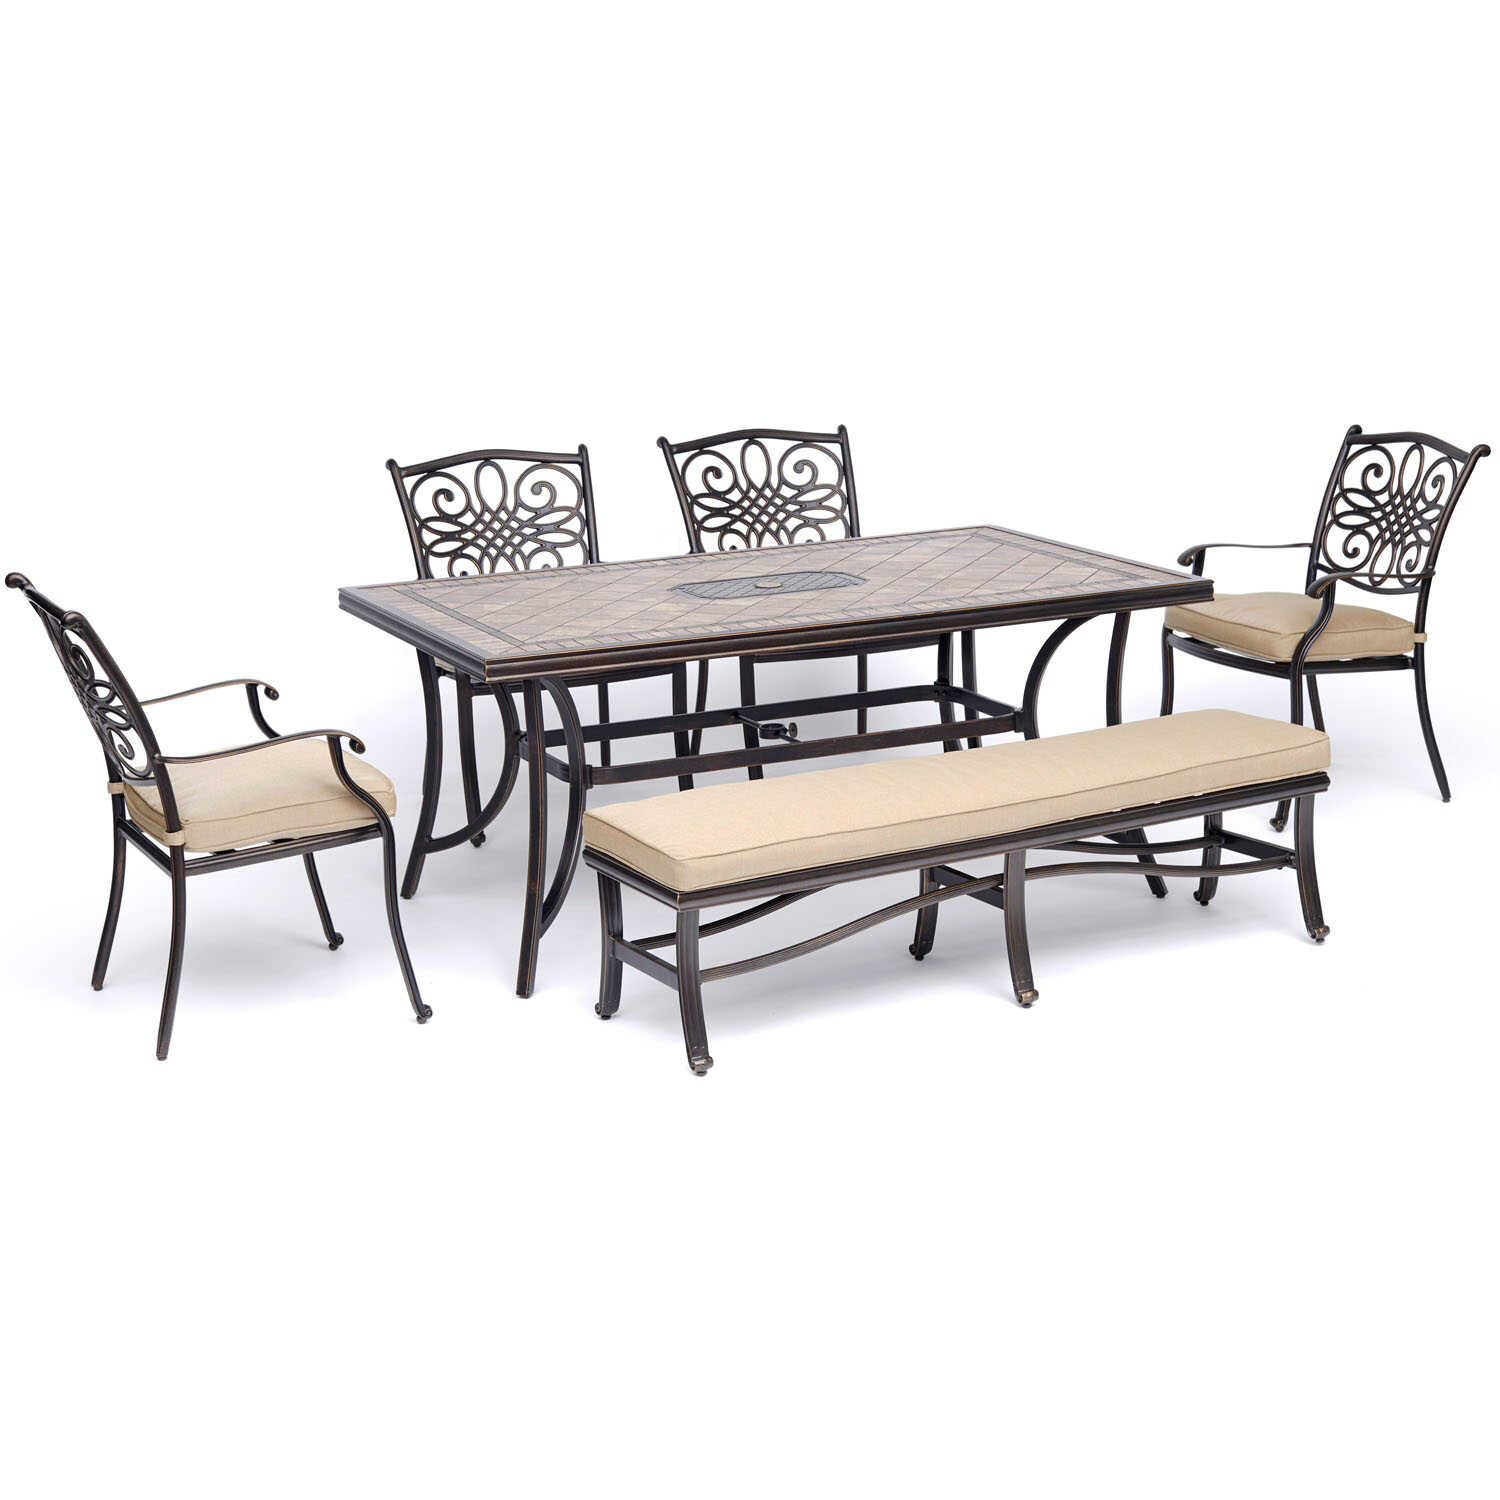 Hanover  Monaco  6 pc. Bronze  Aluminum  Patio Set  Tan